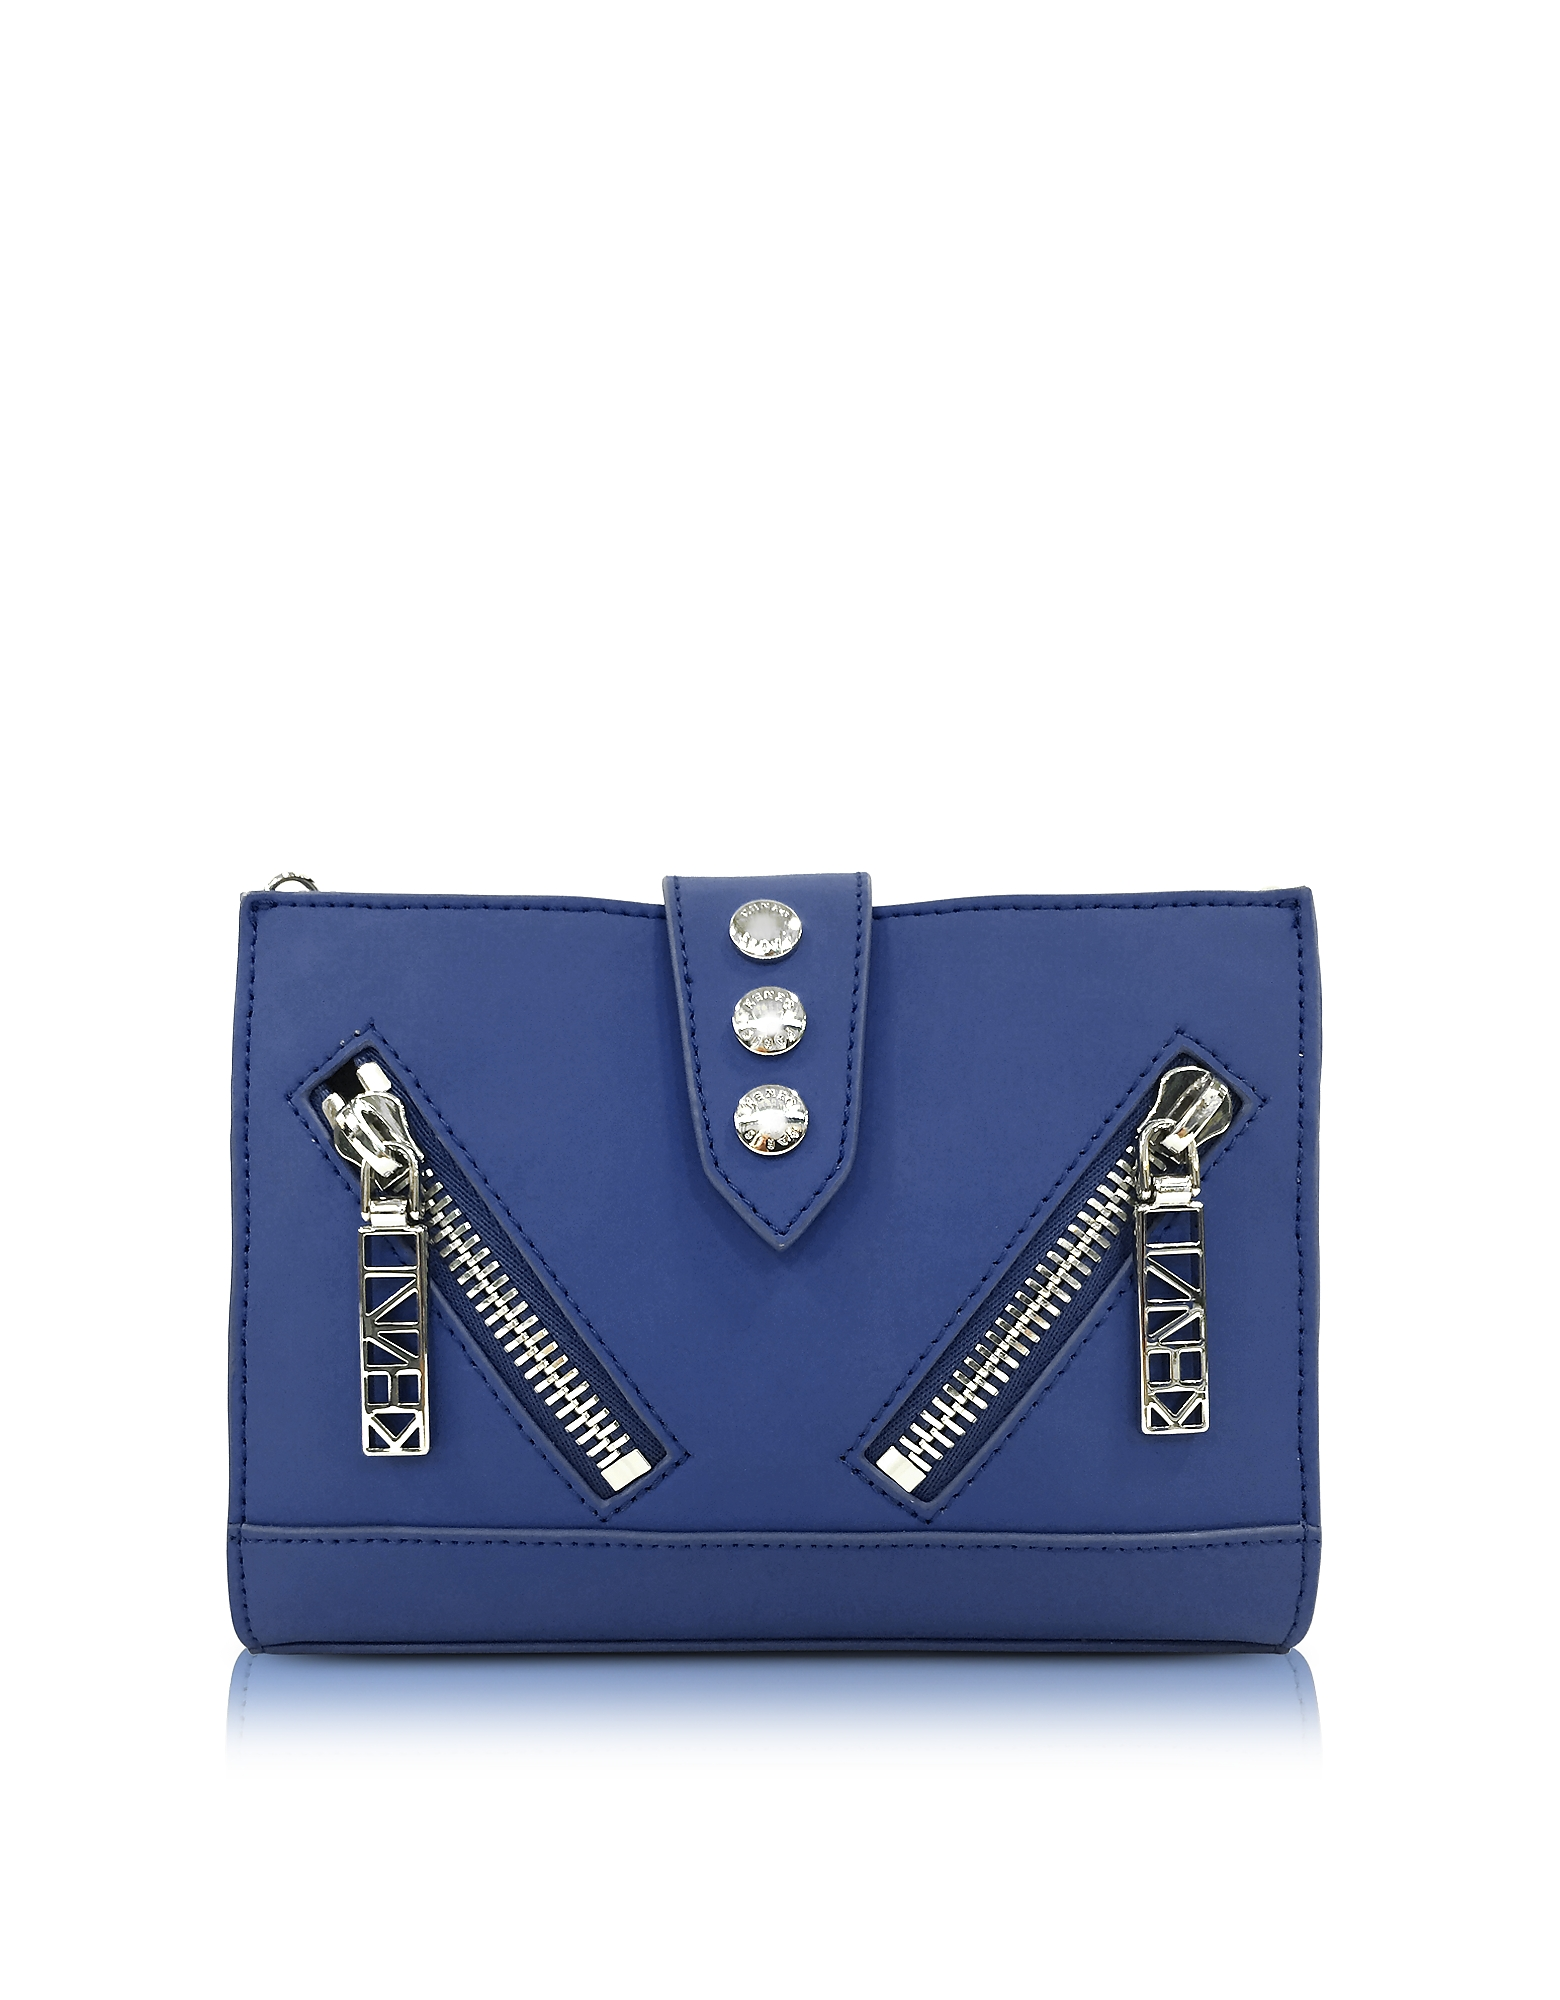 Kenzo Handbags, Dark Blue Gommato Leather Kalifornia Wallet on Chain